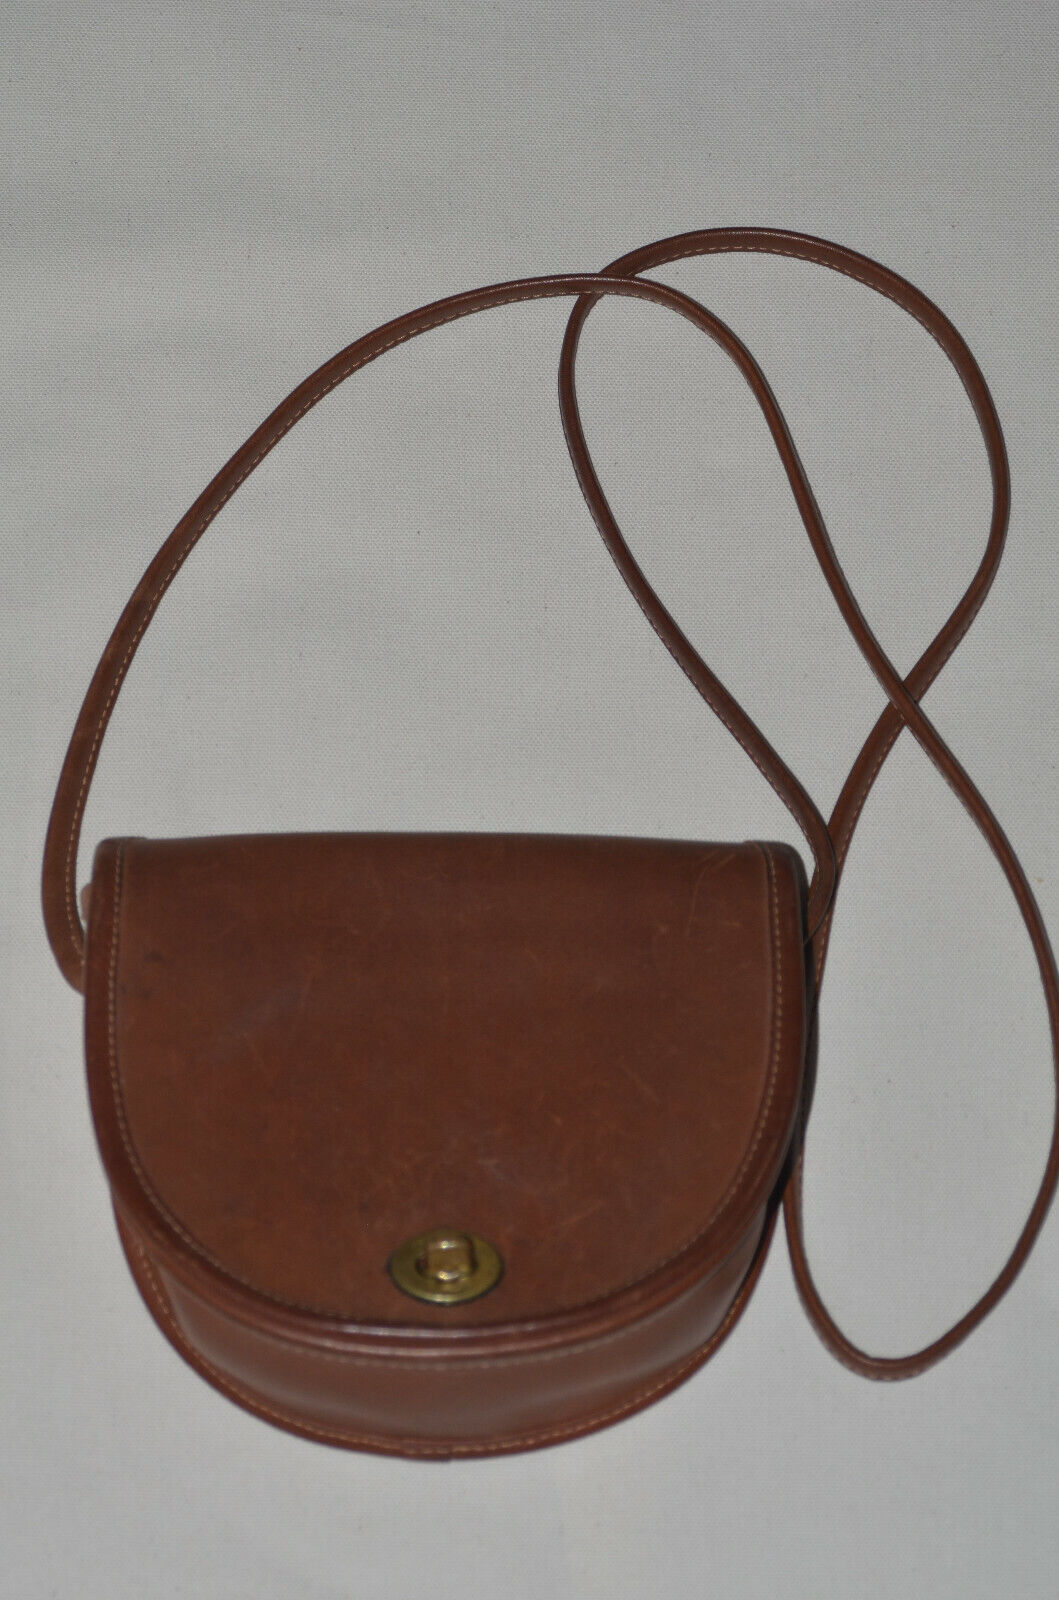 Vintage Coach Shoulder Bag Brown Leather Small Saddle Pouch Style